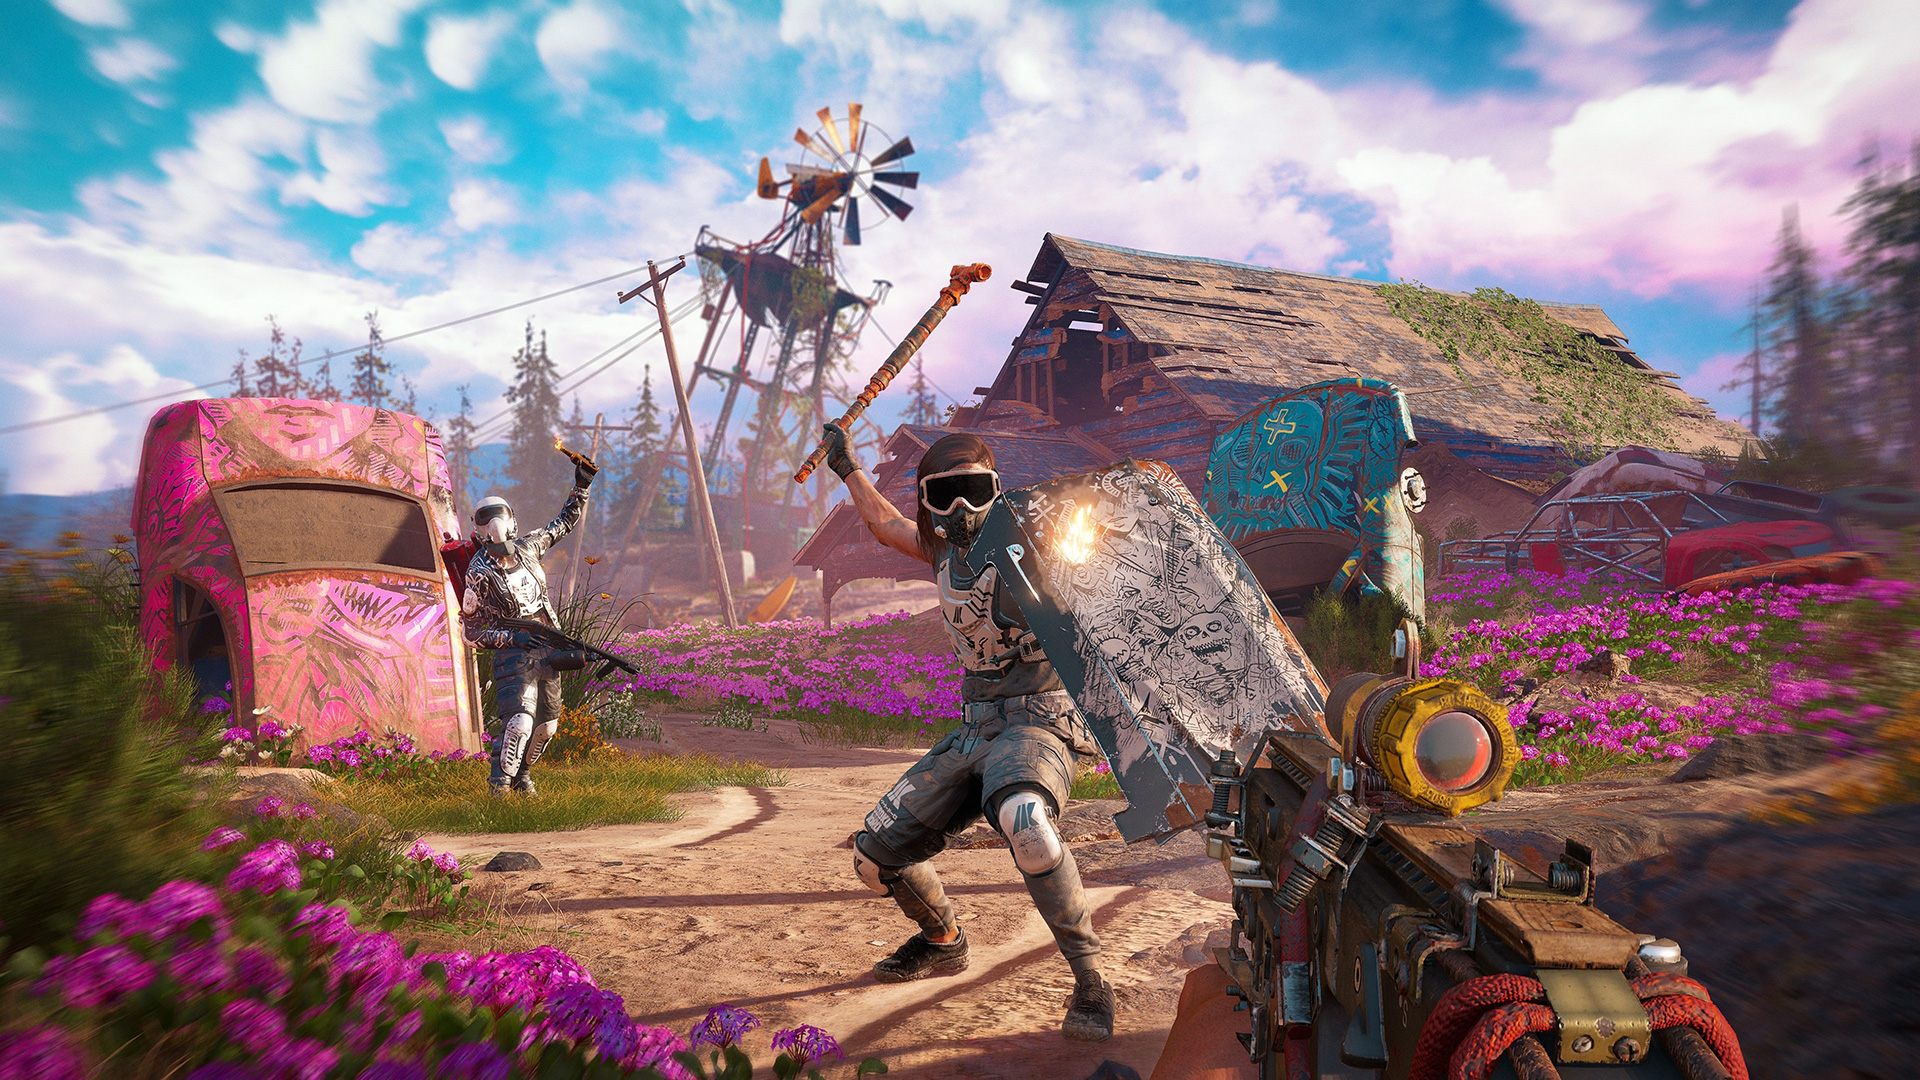 Far Cry New Dawn Wallpapers In Ultra Hd 4k Gameranx